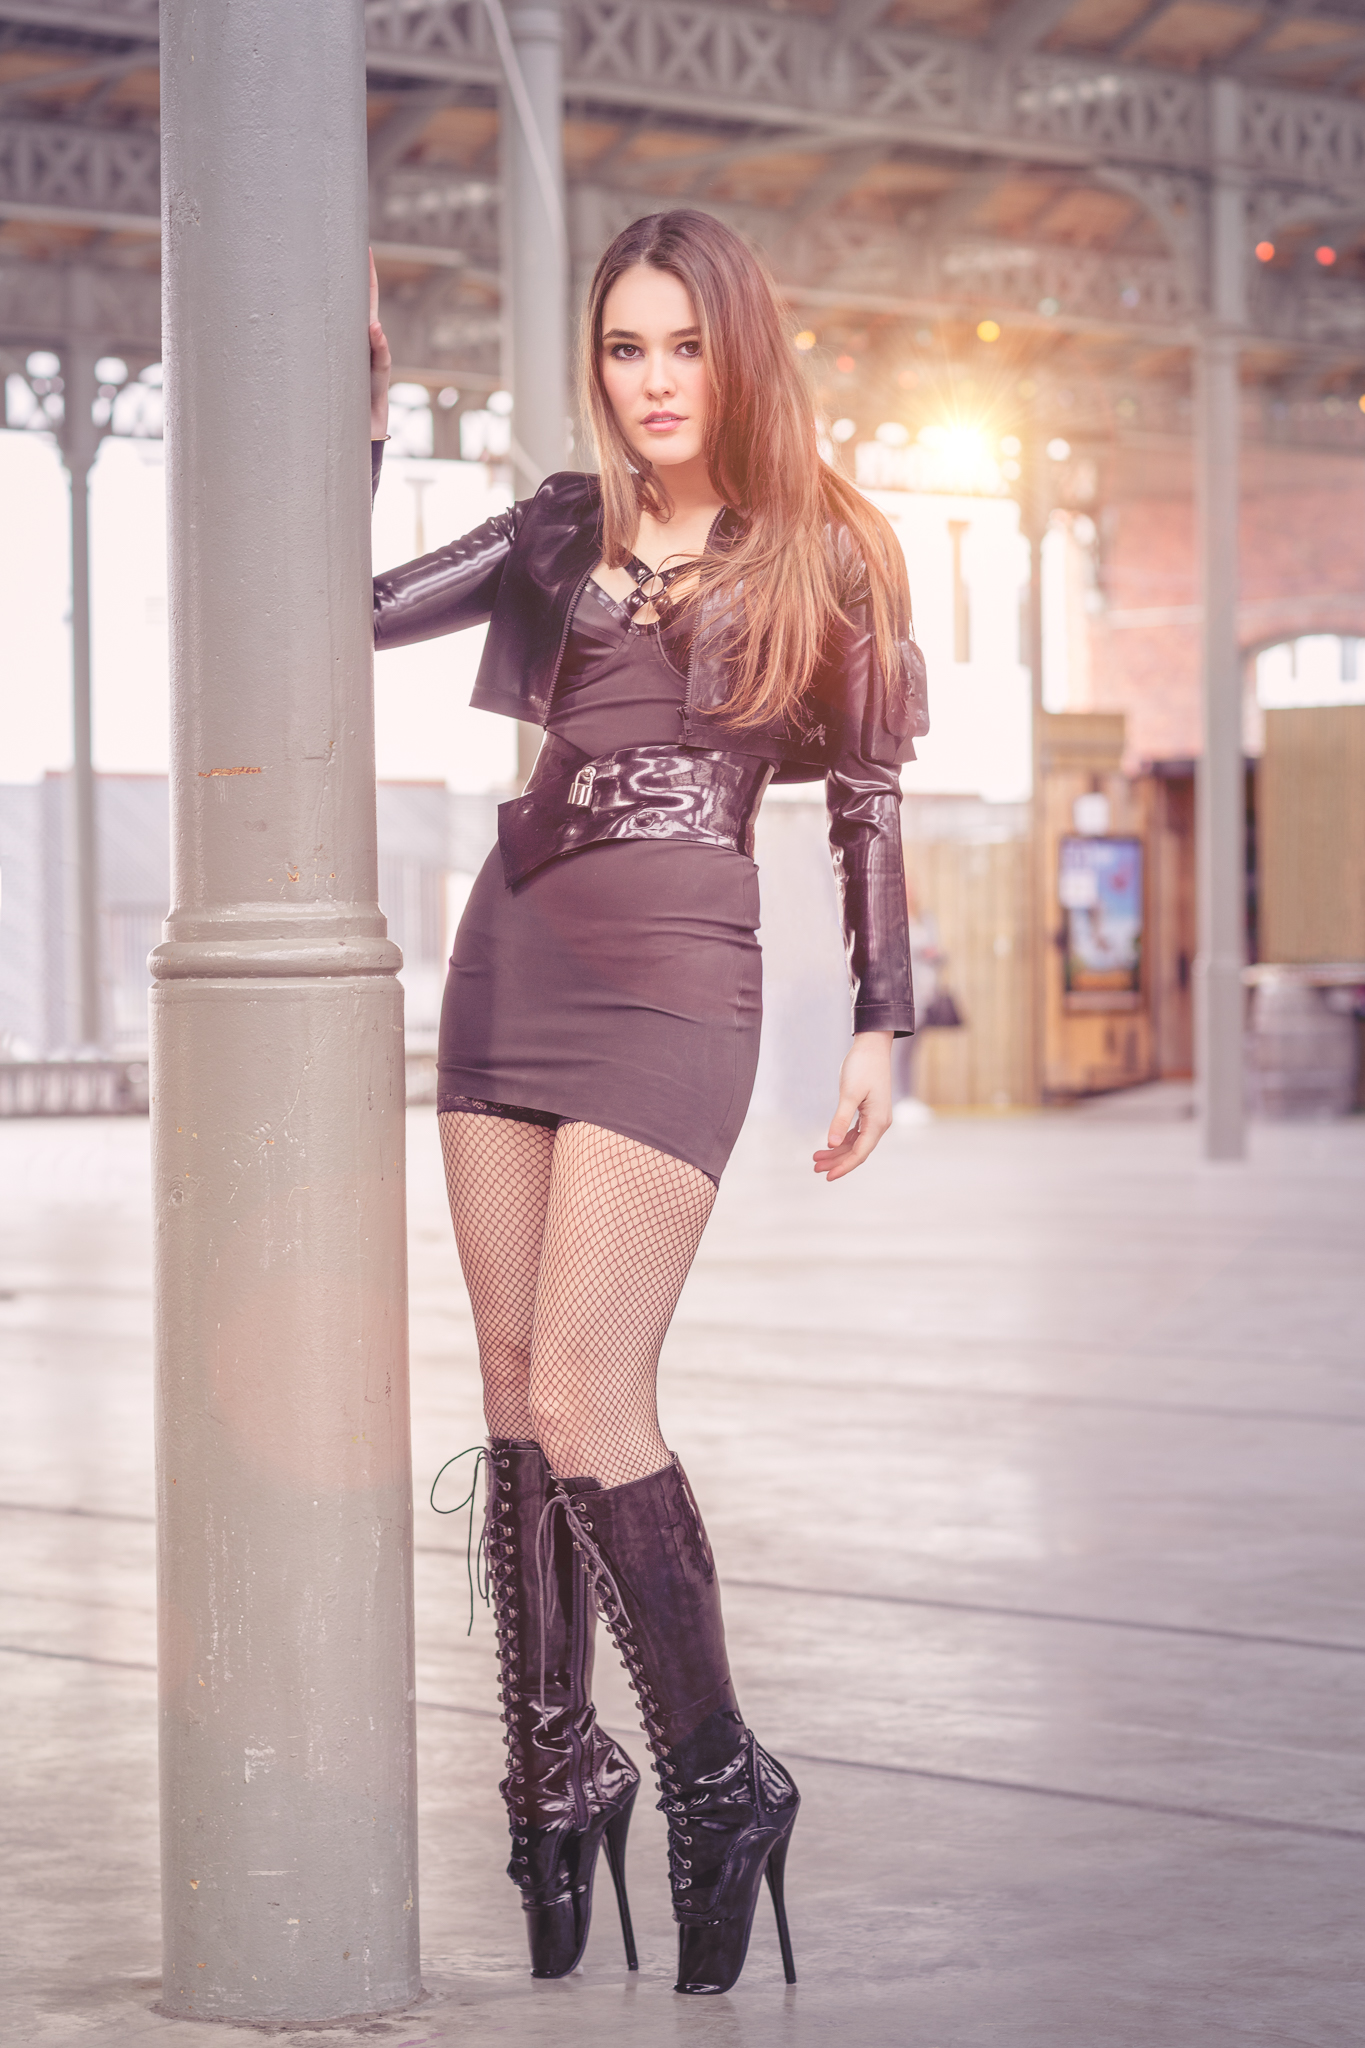 Shannety in Latex by Meat and Pandora Deluxe and Ballet Heels by Kassiopeya